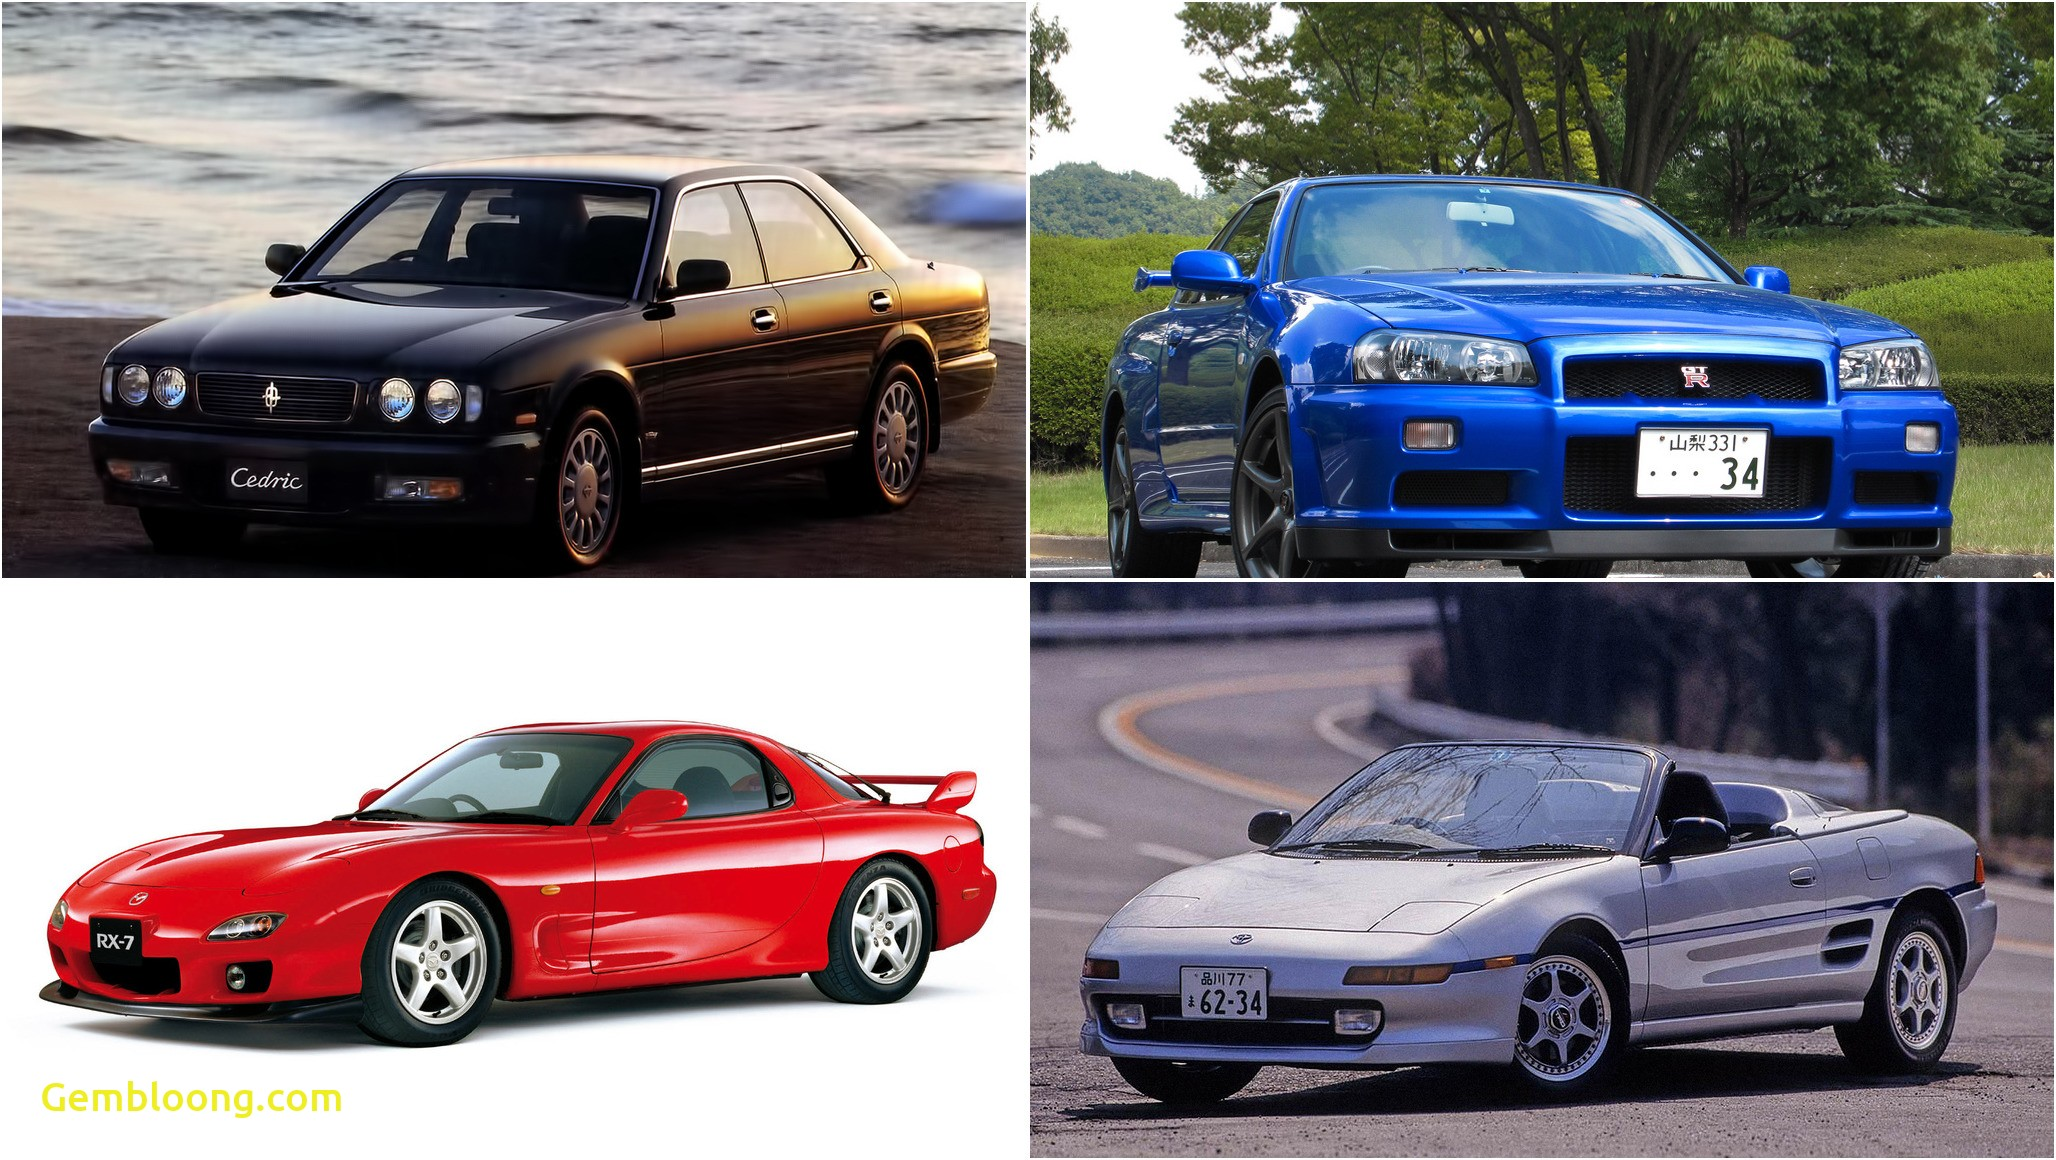 Jdm Cars for Sale Near Me Best Of 5 Y True Import Jdm Cars You Should Consider Buying